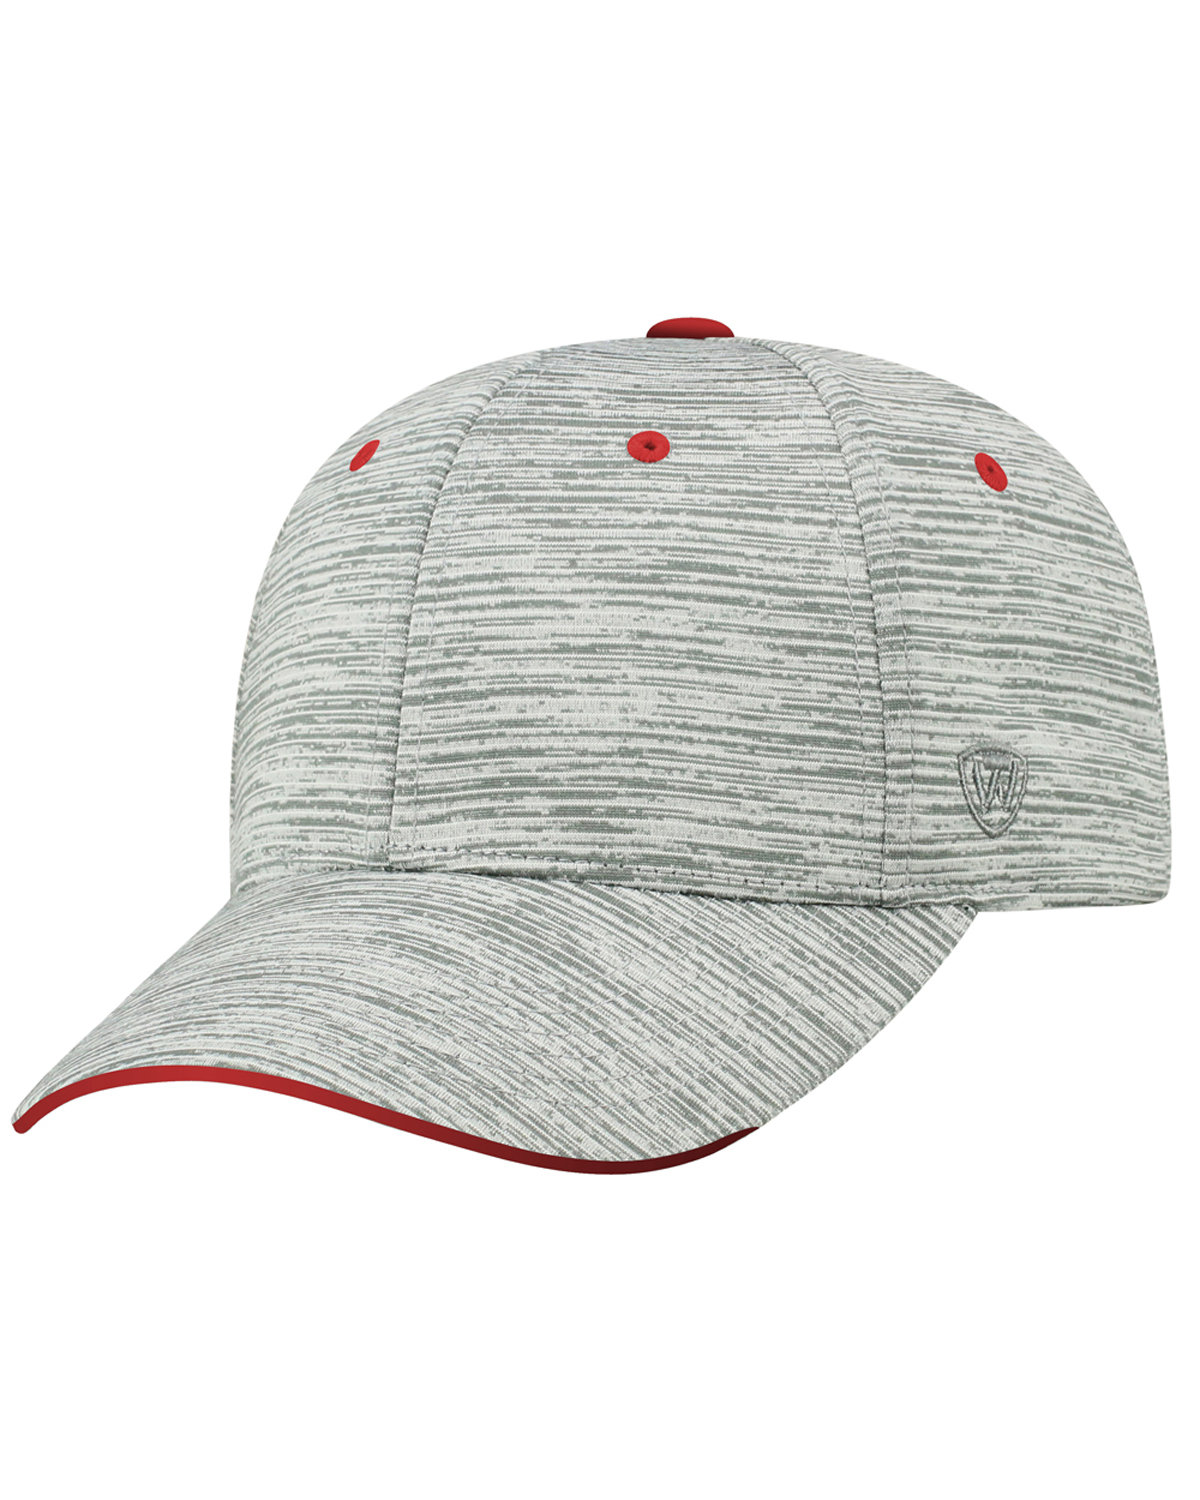 Top Of The World Adult Ballaholla Cap RED